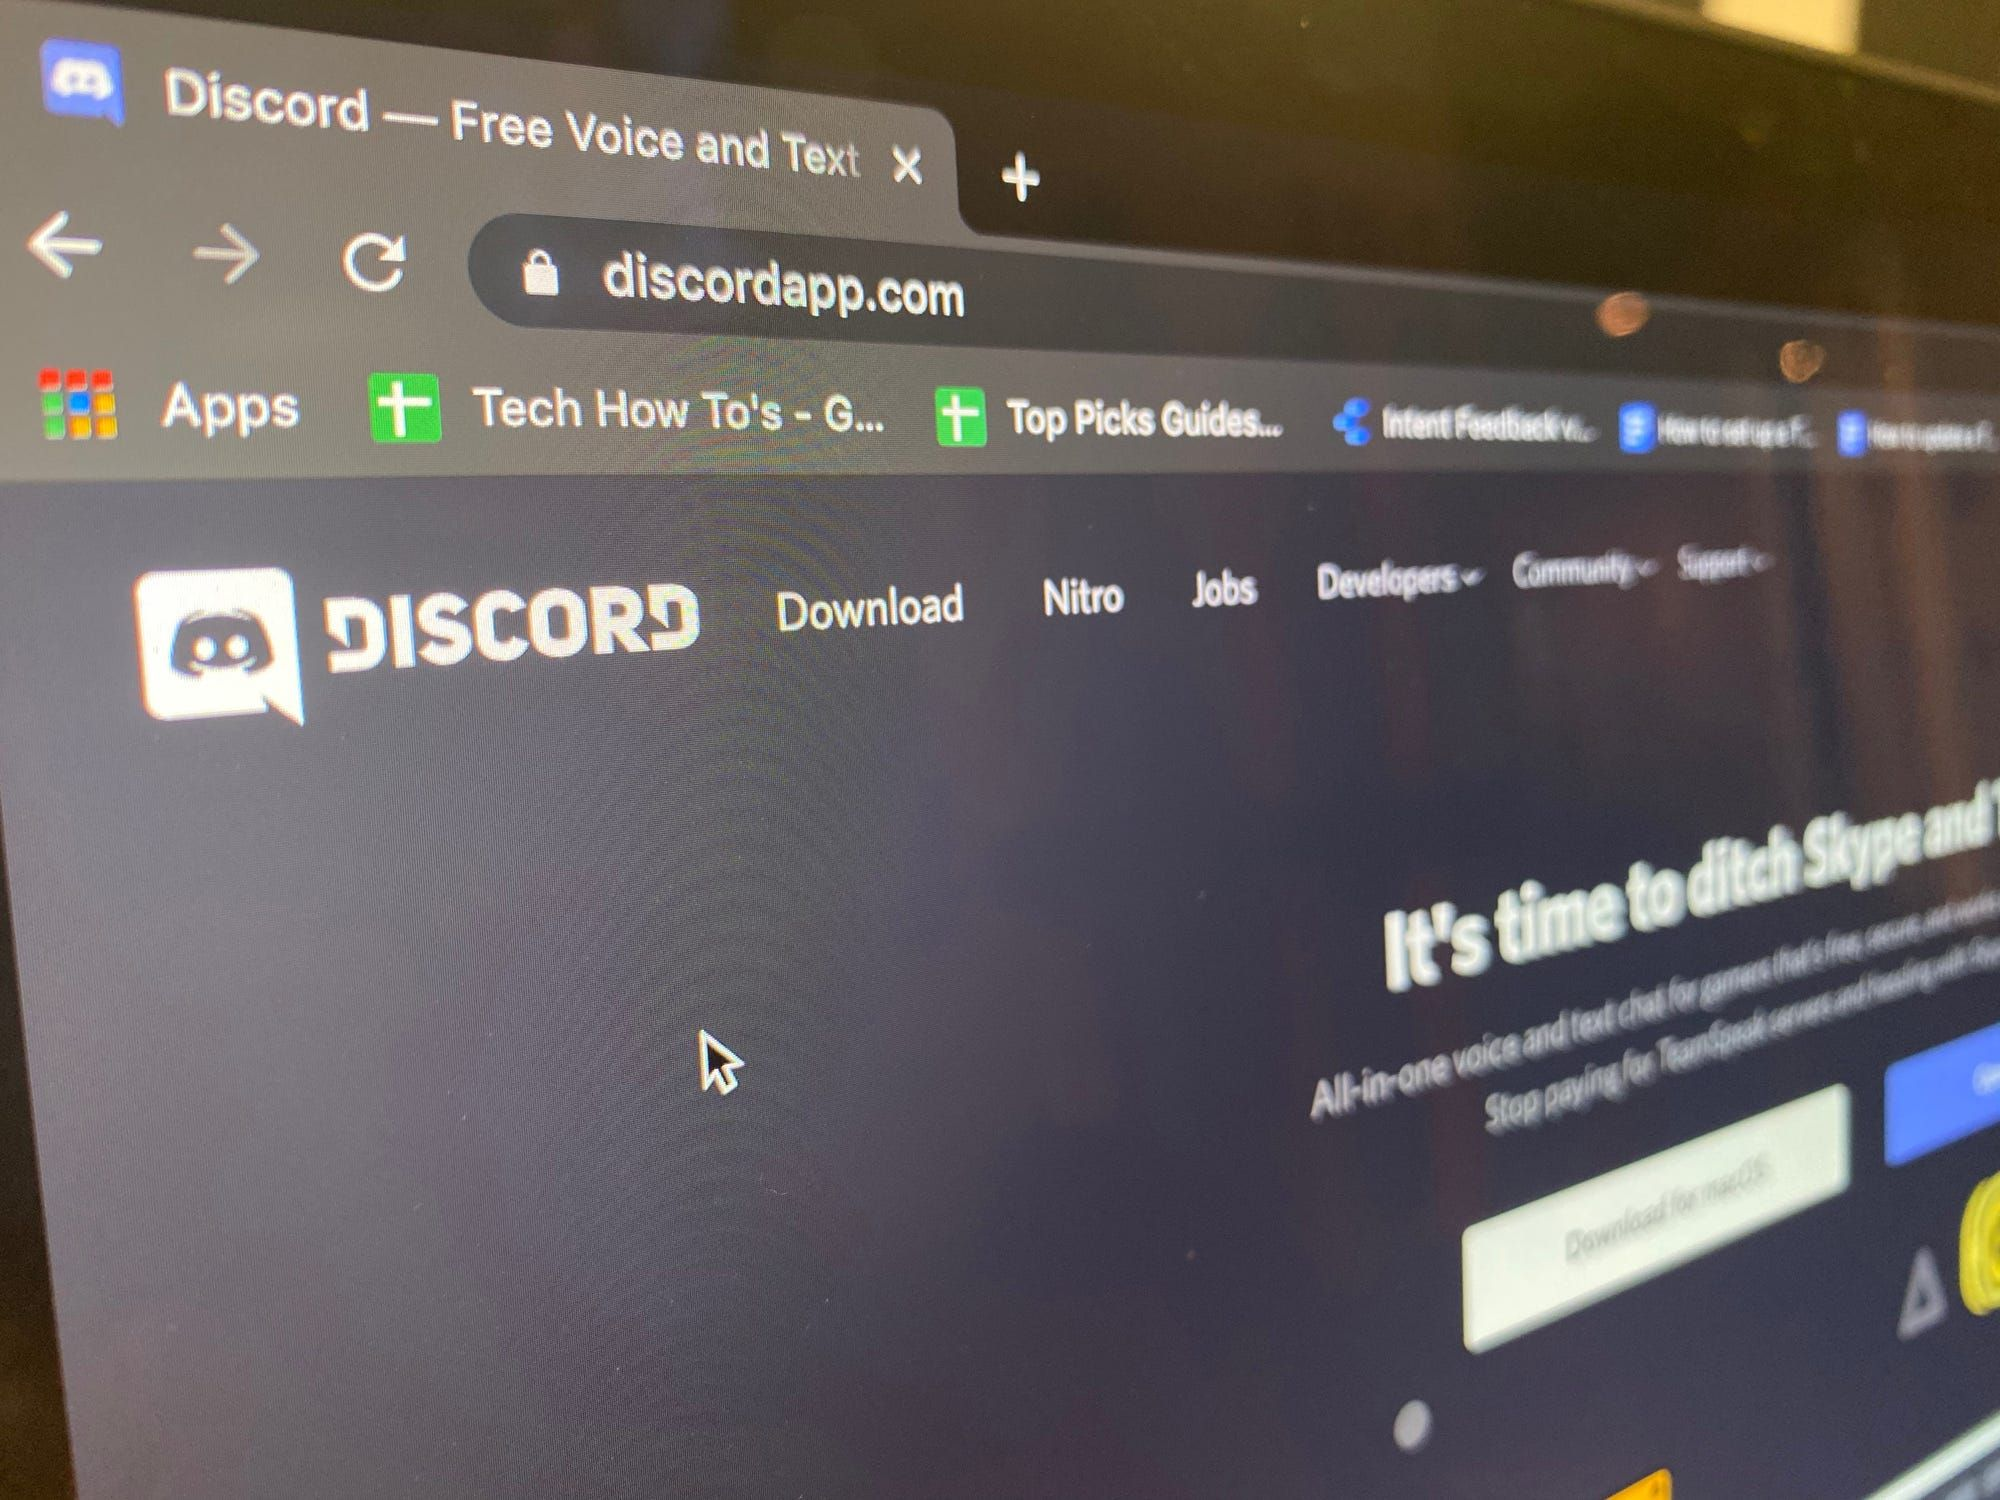 How to download the Discord app on your PC in 4 steps